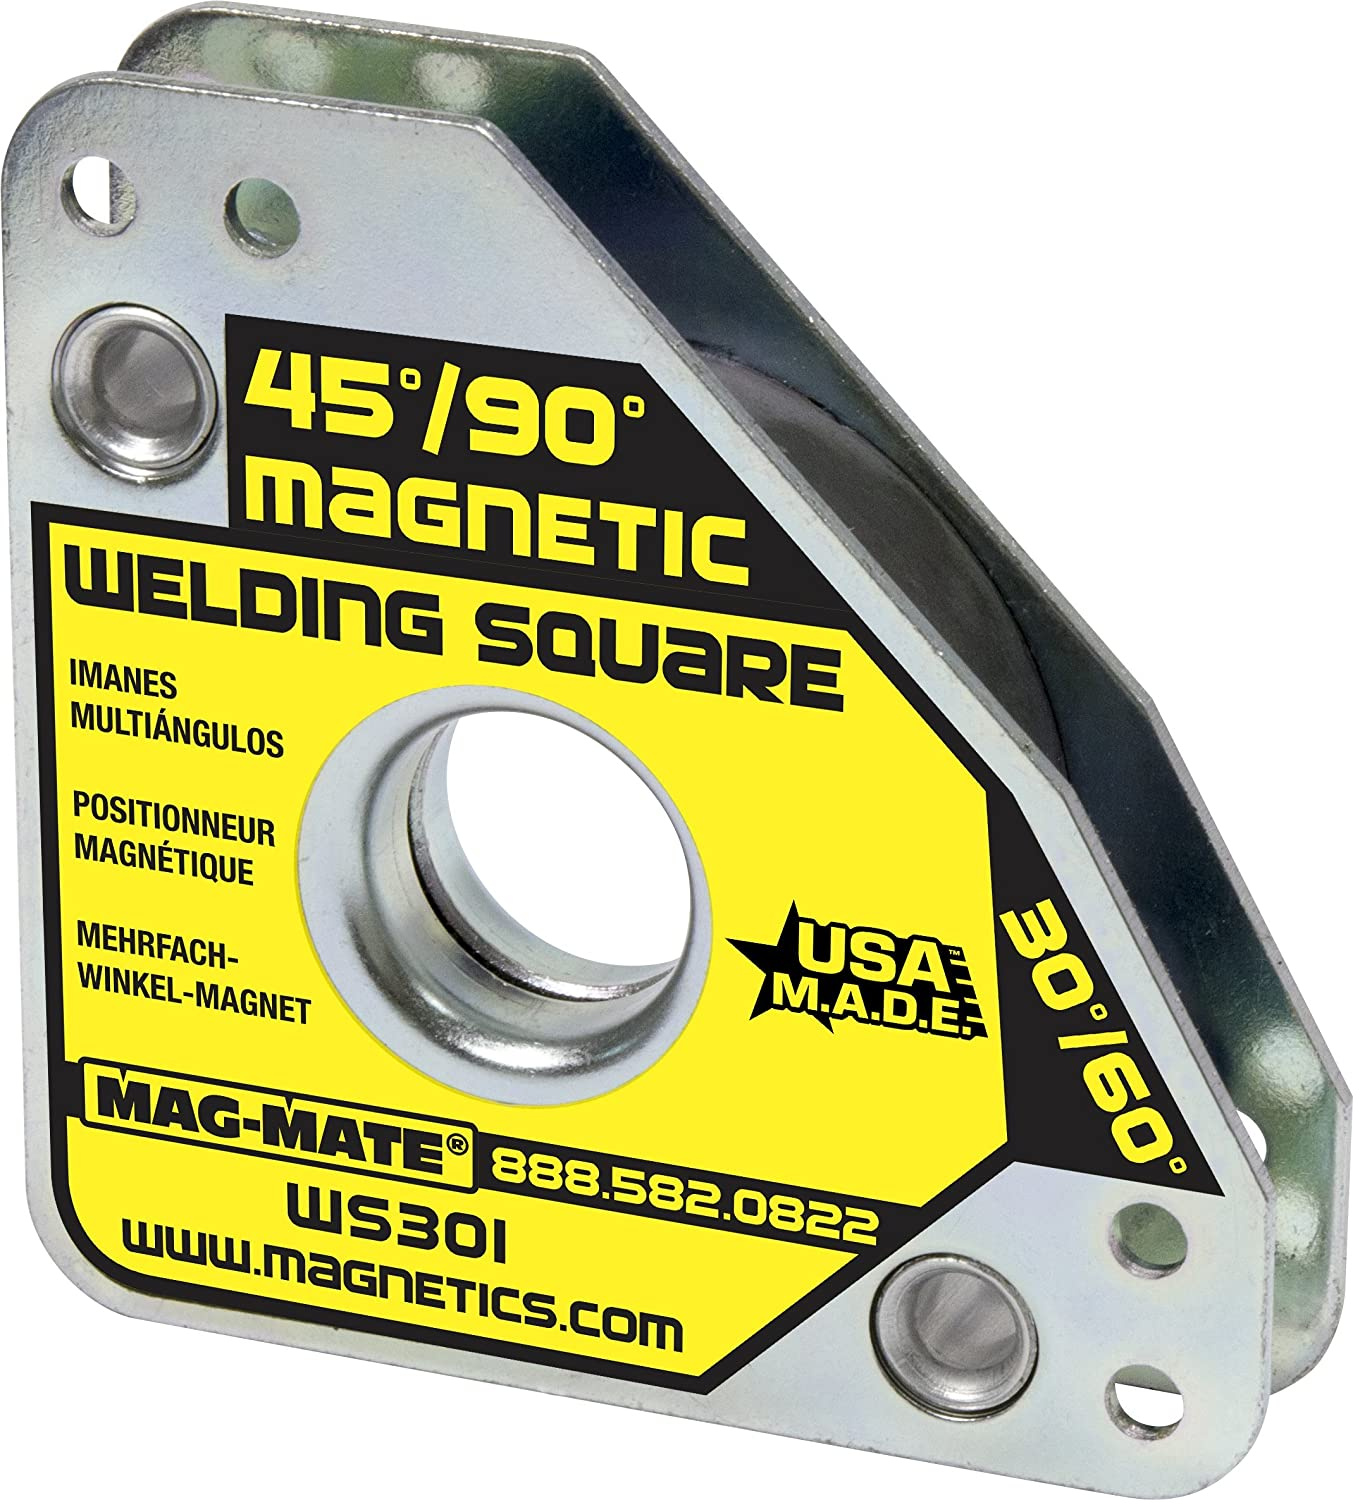 MAG-MATE WS301 Compact Multi Angle Magnetic Welding Square with 55 lb Capacity